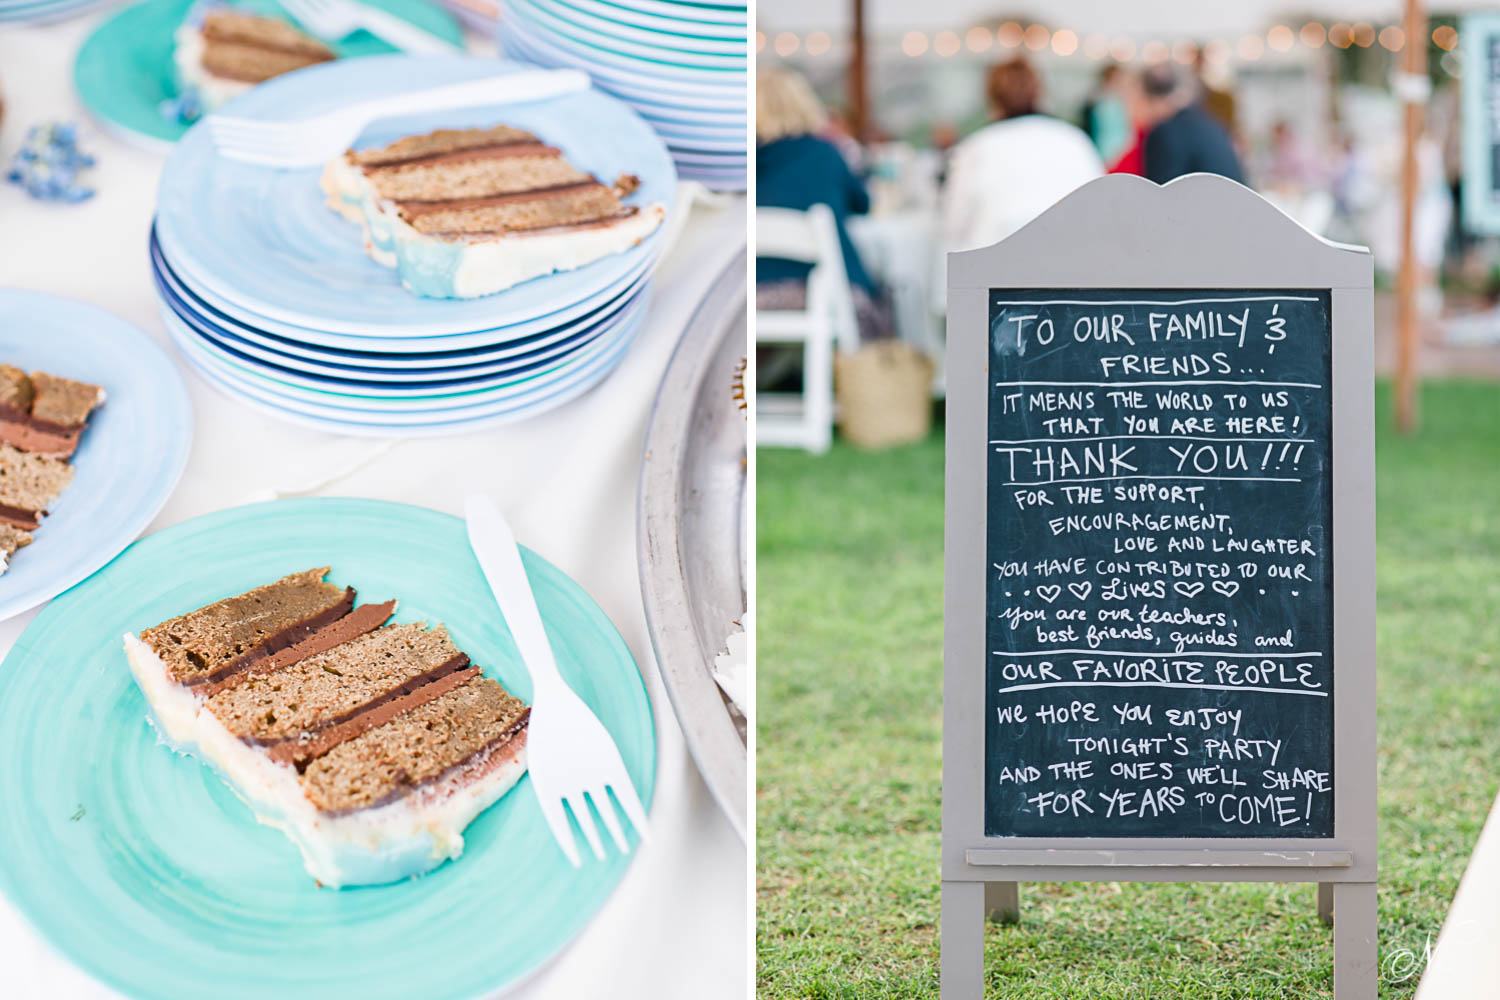 wedding cake slices and custome chalkboard welcome wedding party sign